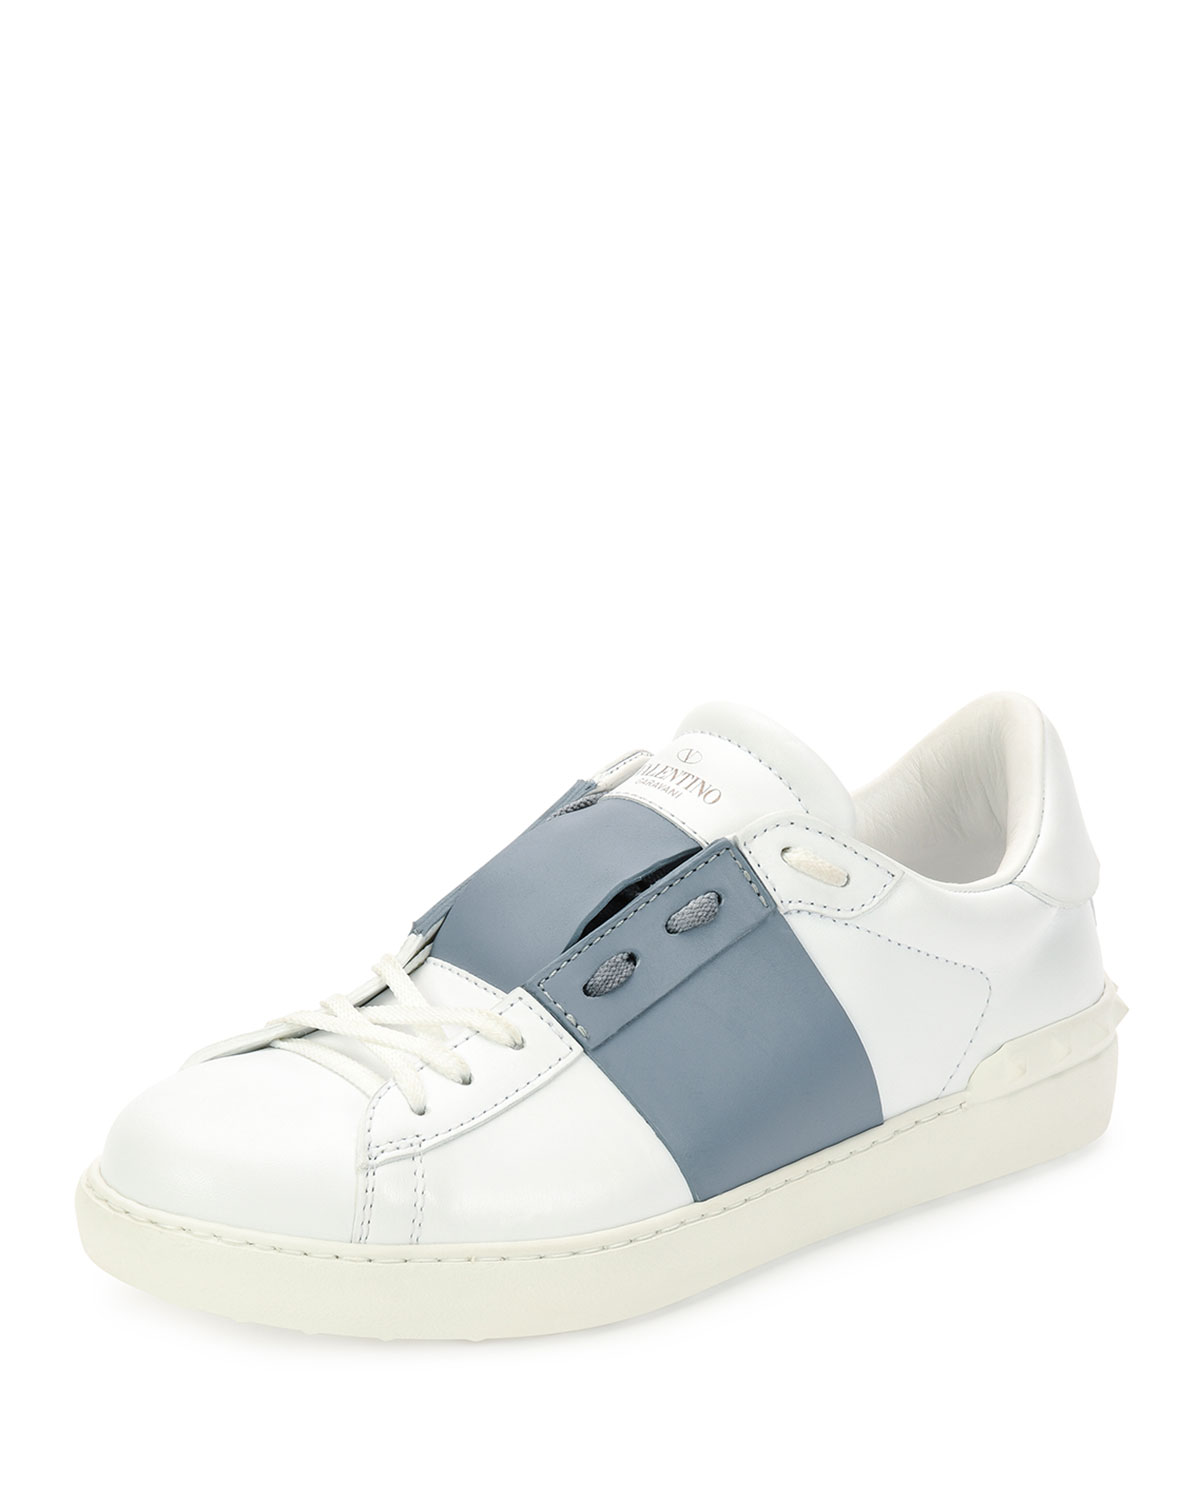 Leather Low-Top Sneaker with Stripe, White/Gray, Size: 40.5EU/7.5US, Wht/Grey - Valentino